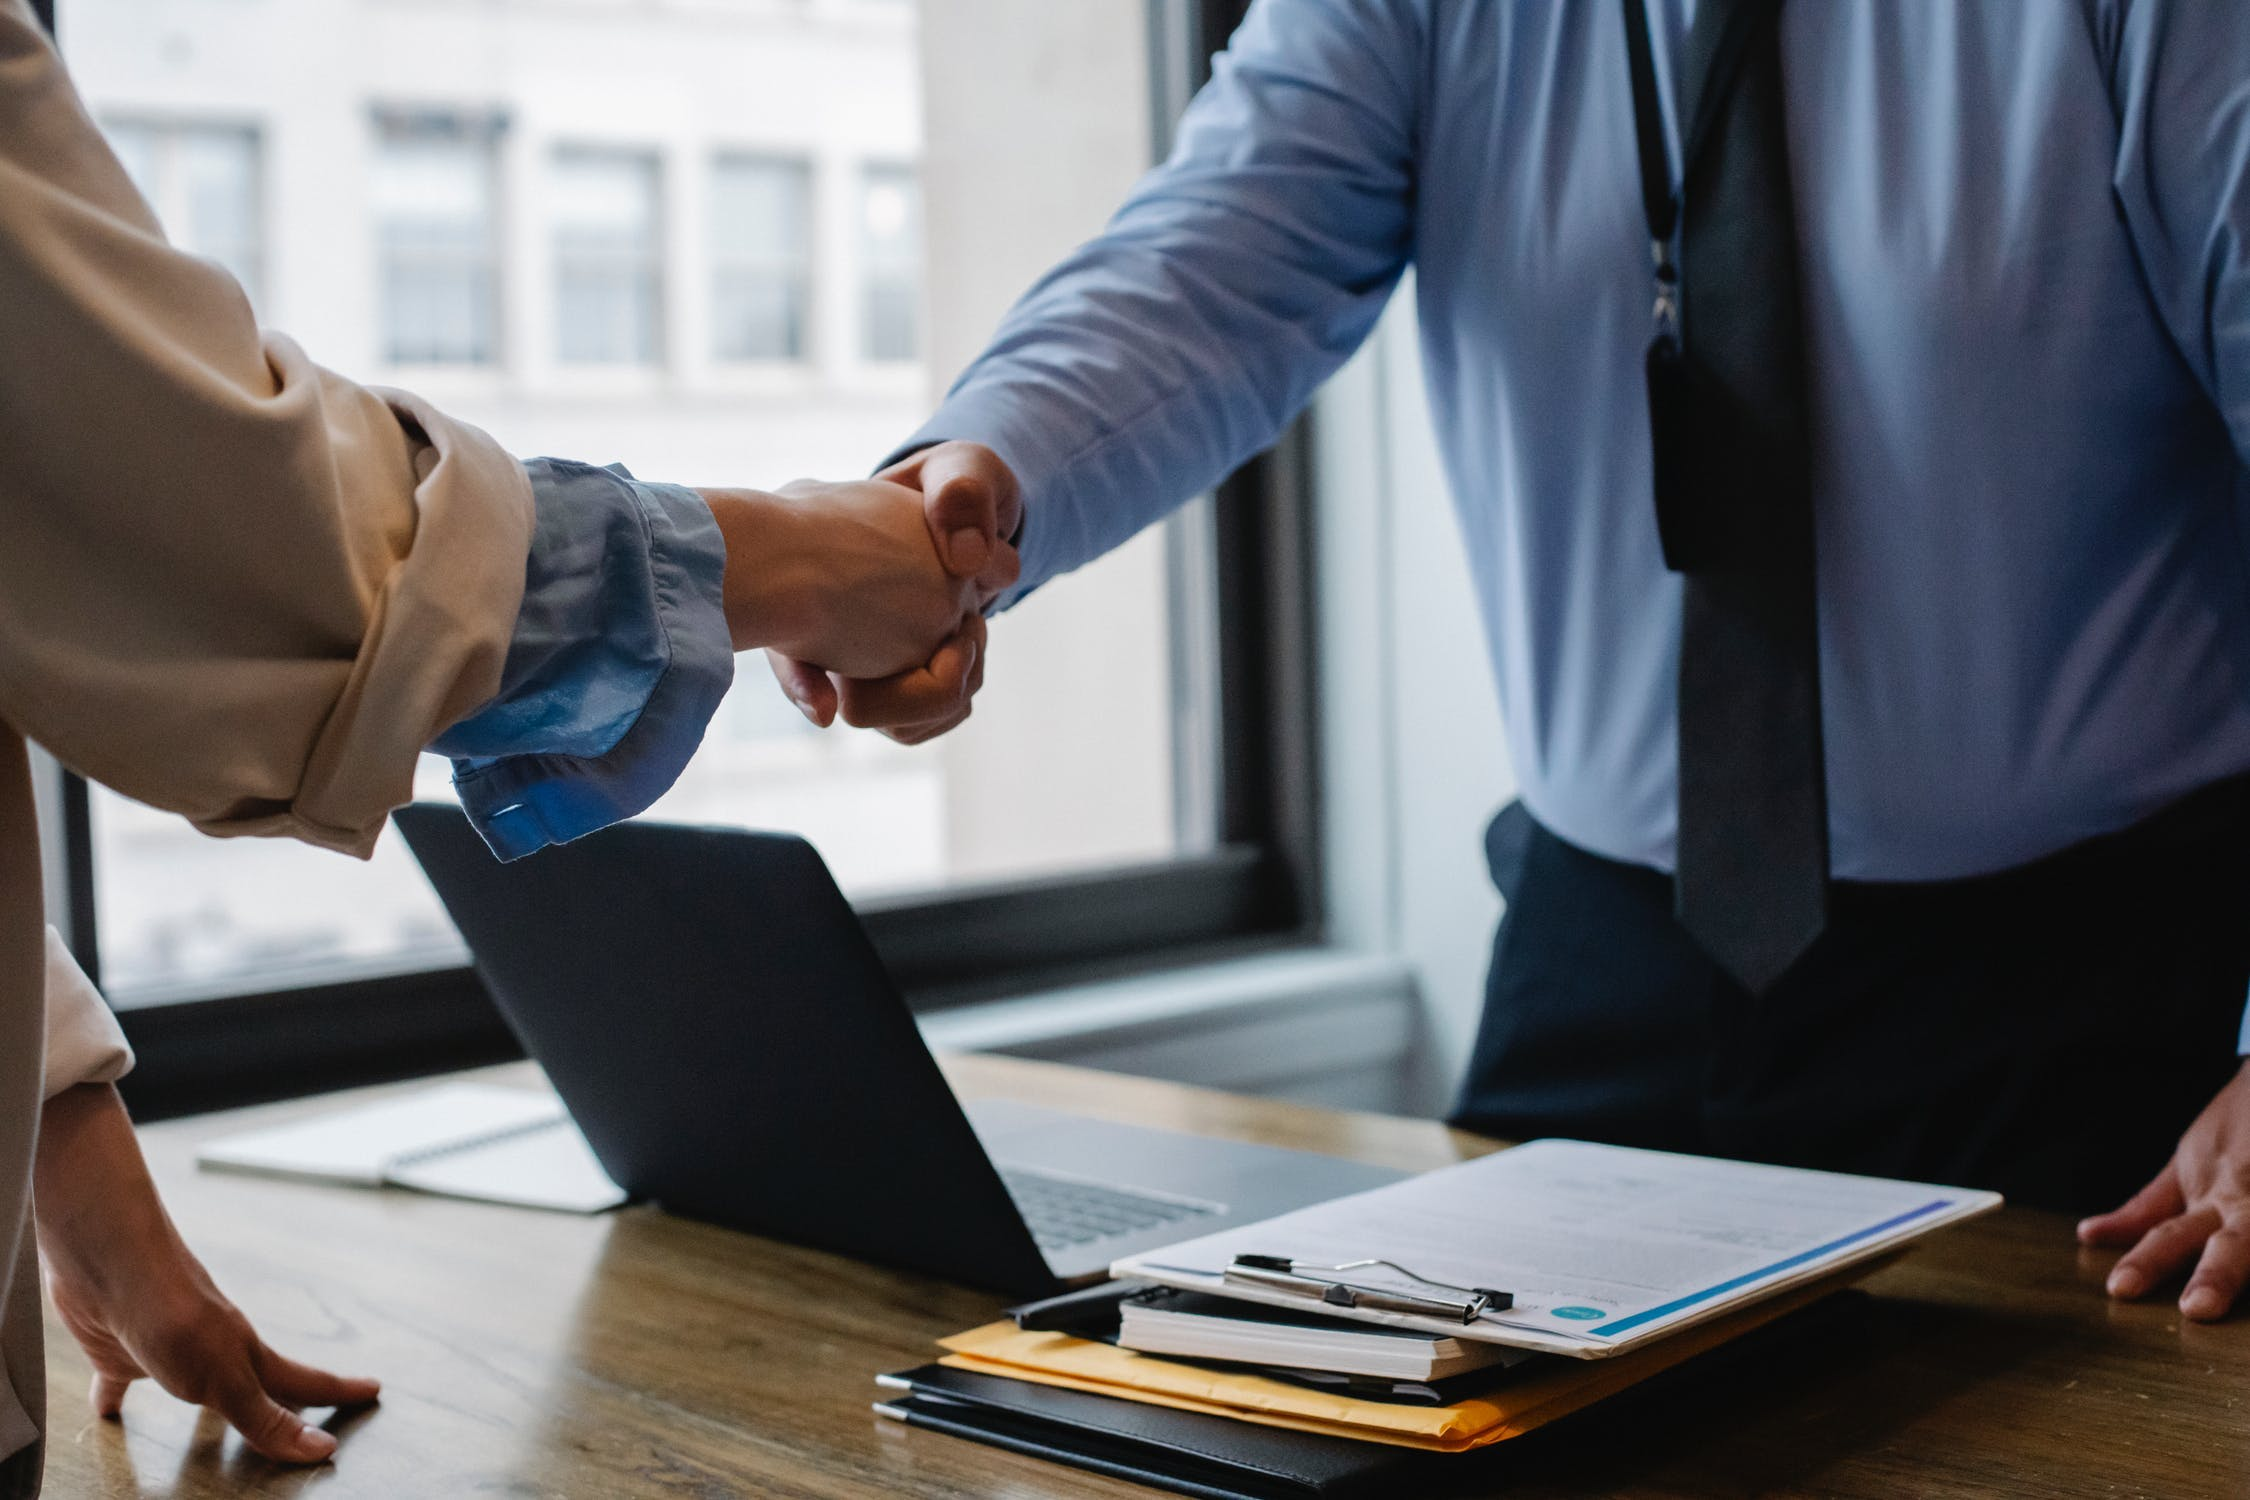 Two people shaking hands in a company office